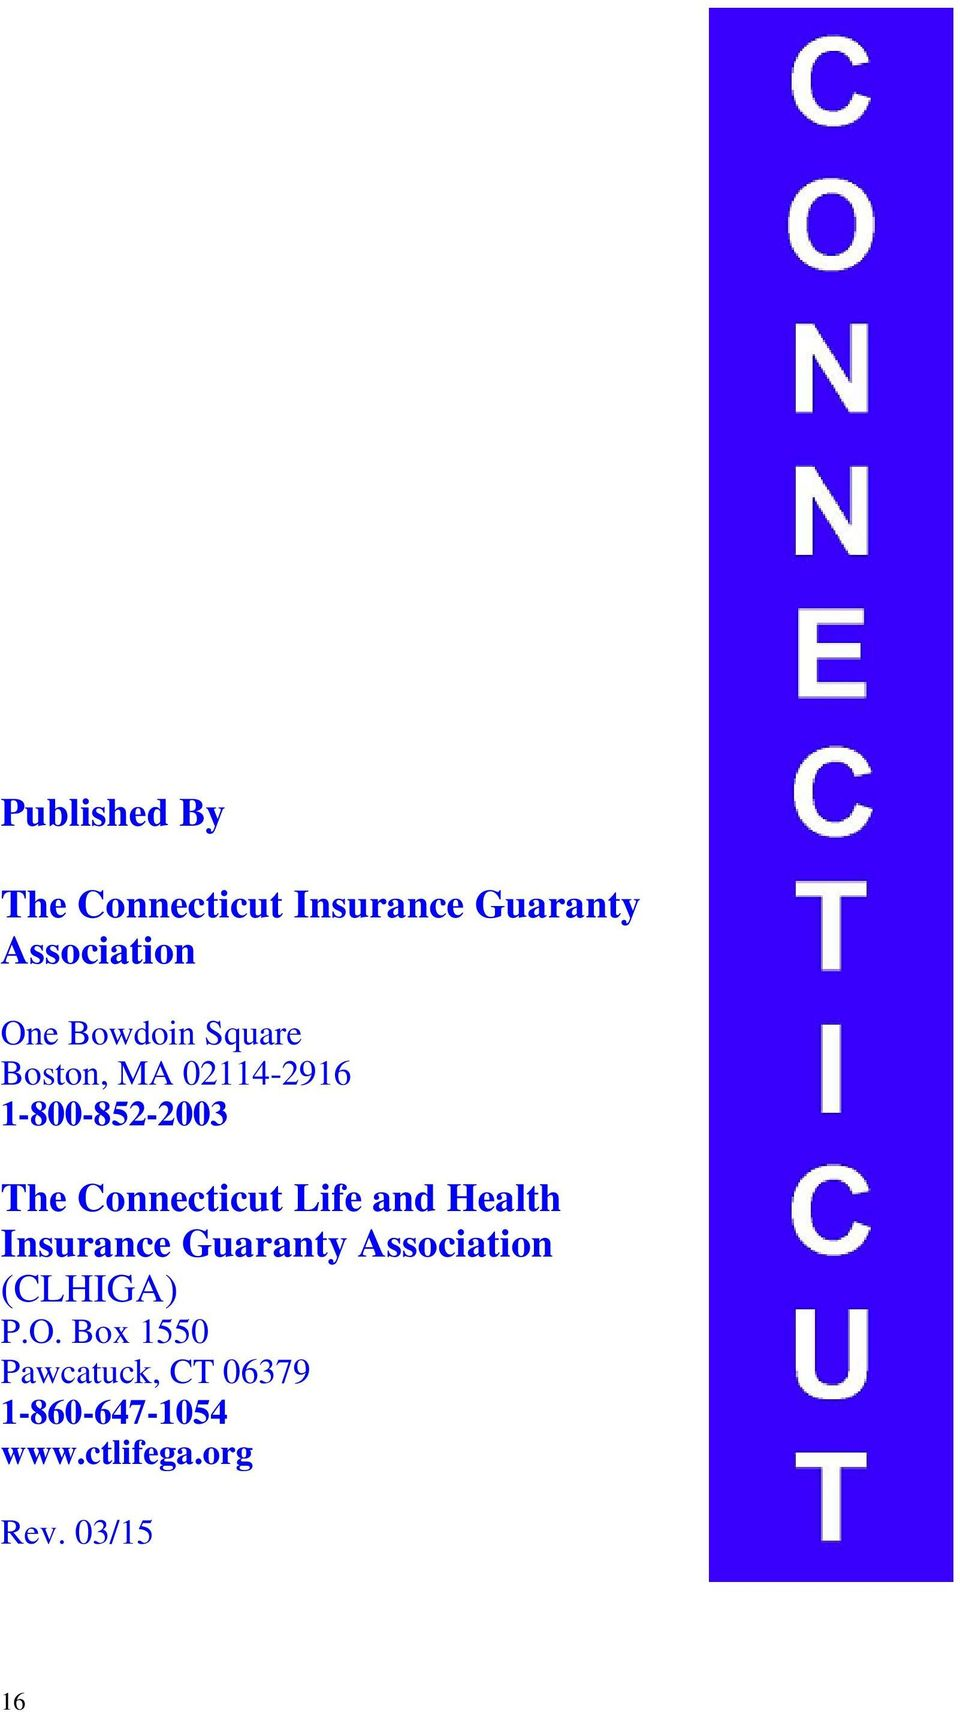 Connecticut Life and Health Insurance Guaranty Association